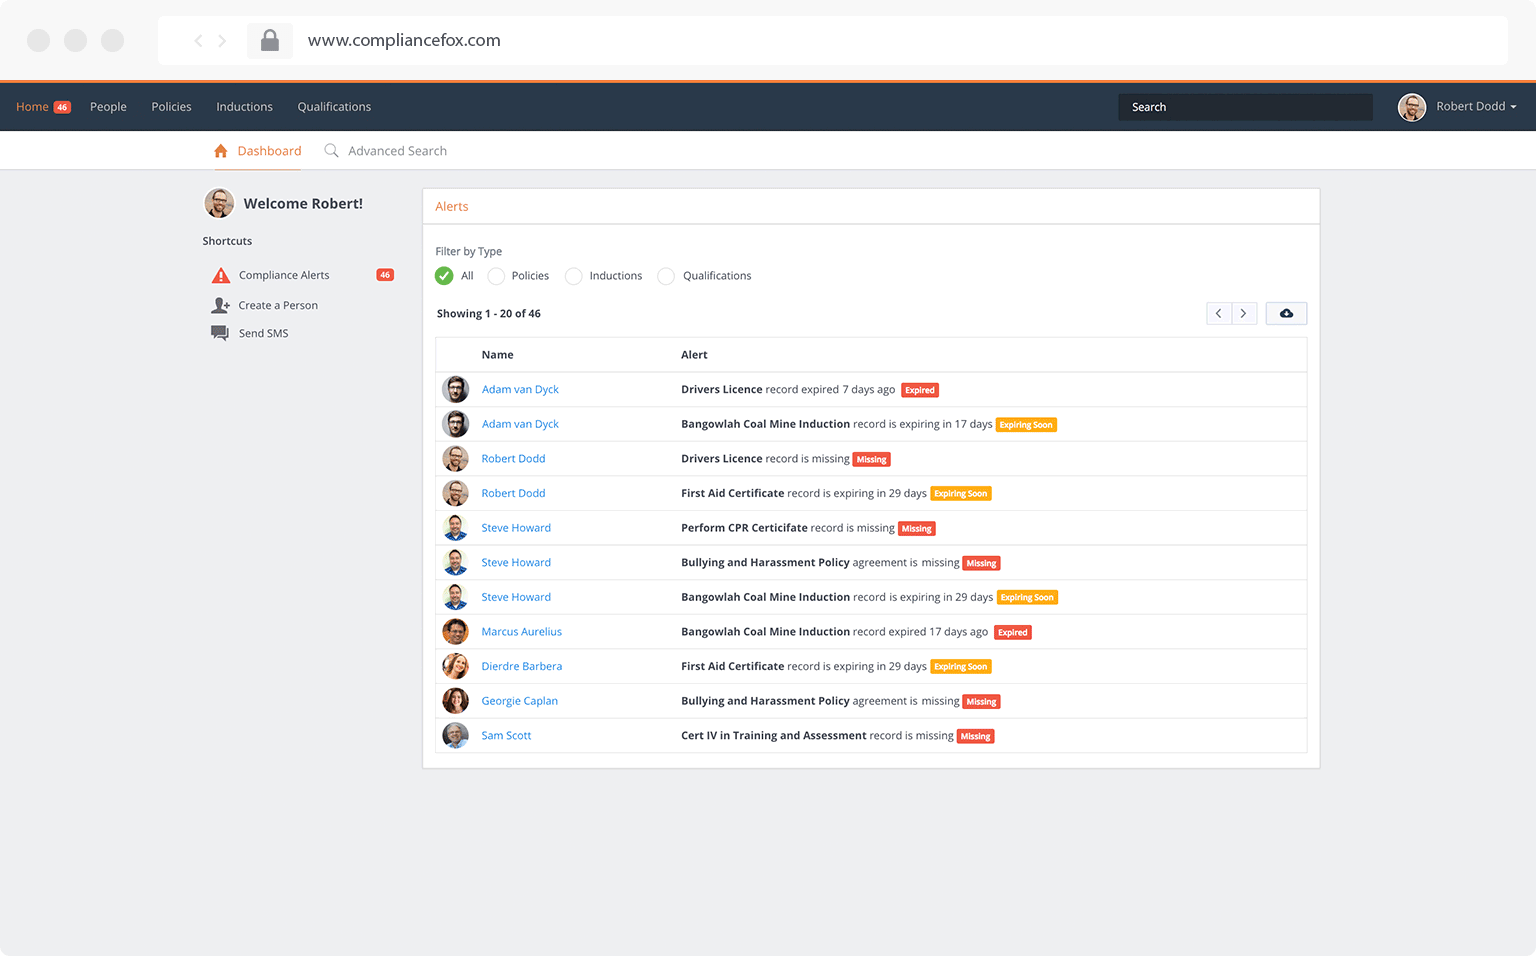 Competency and compliance alerts view in Compliance Fox workforce compliance and HR management system